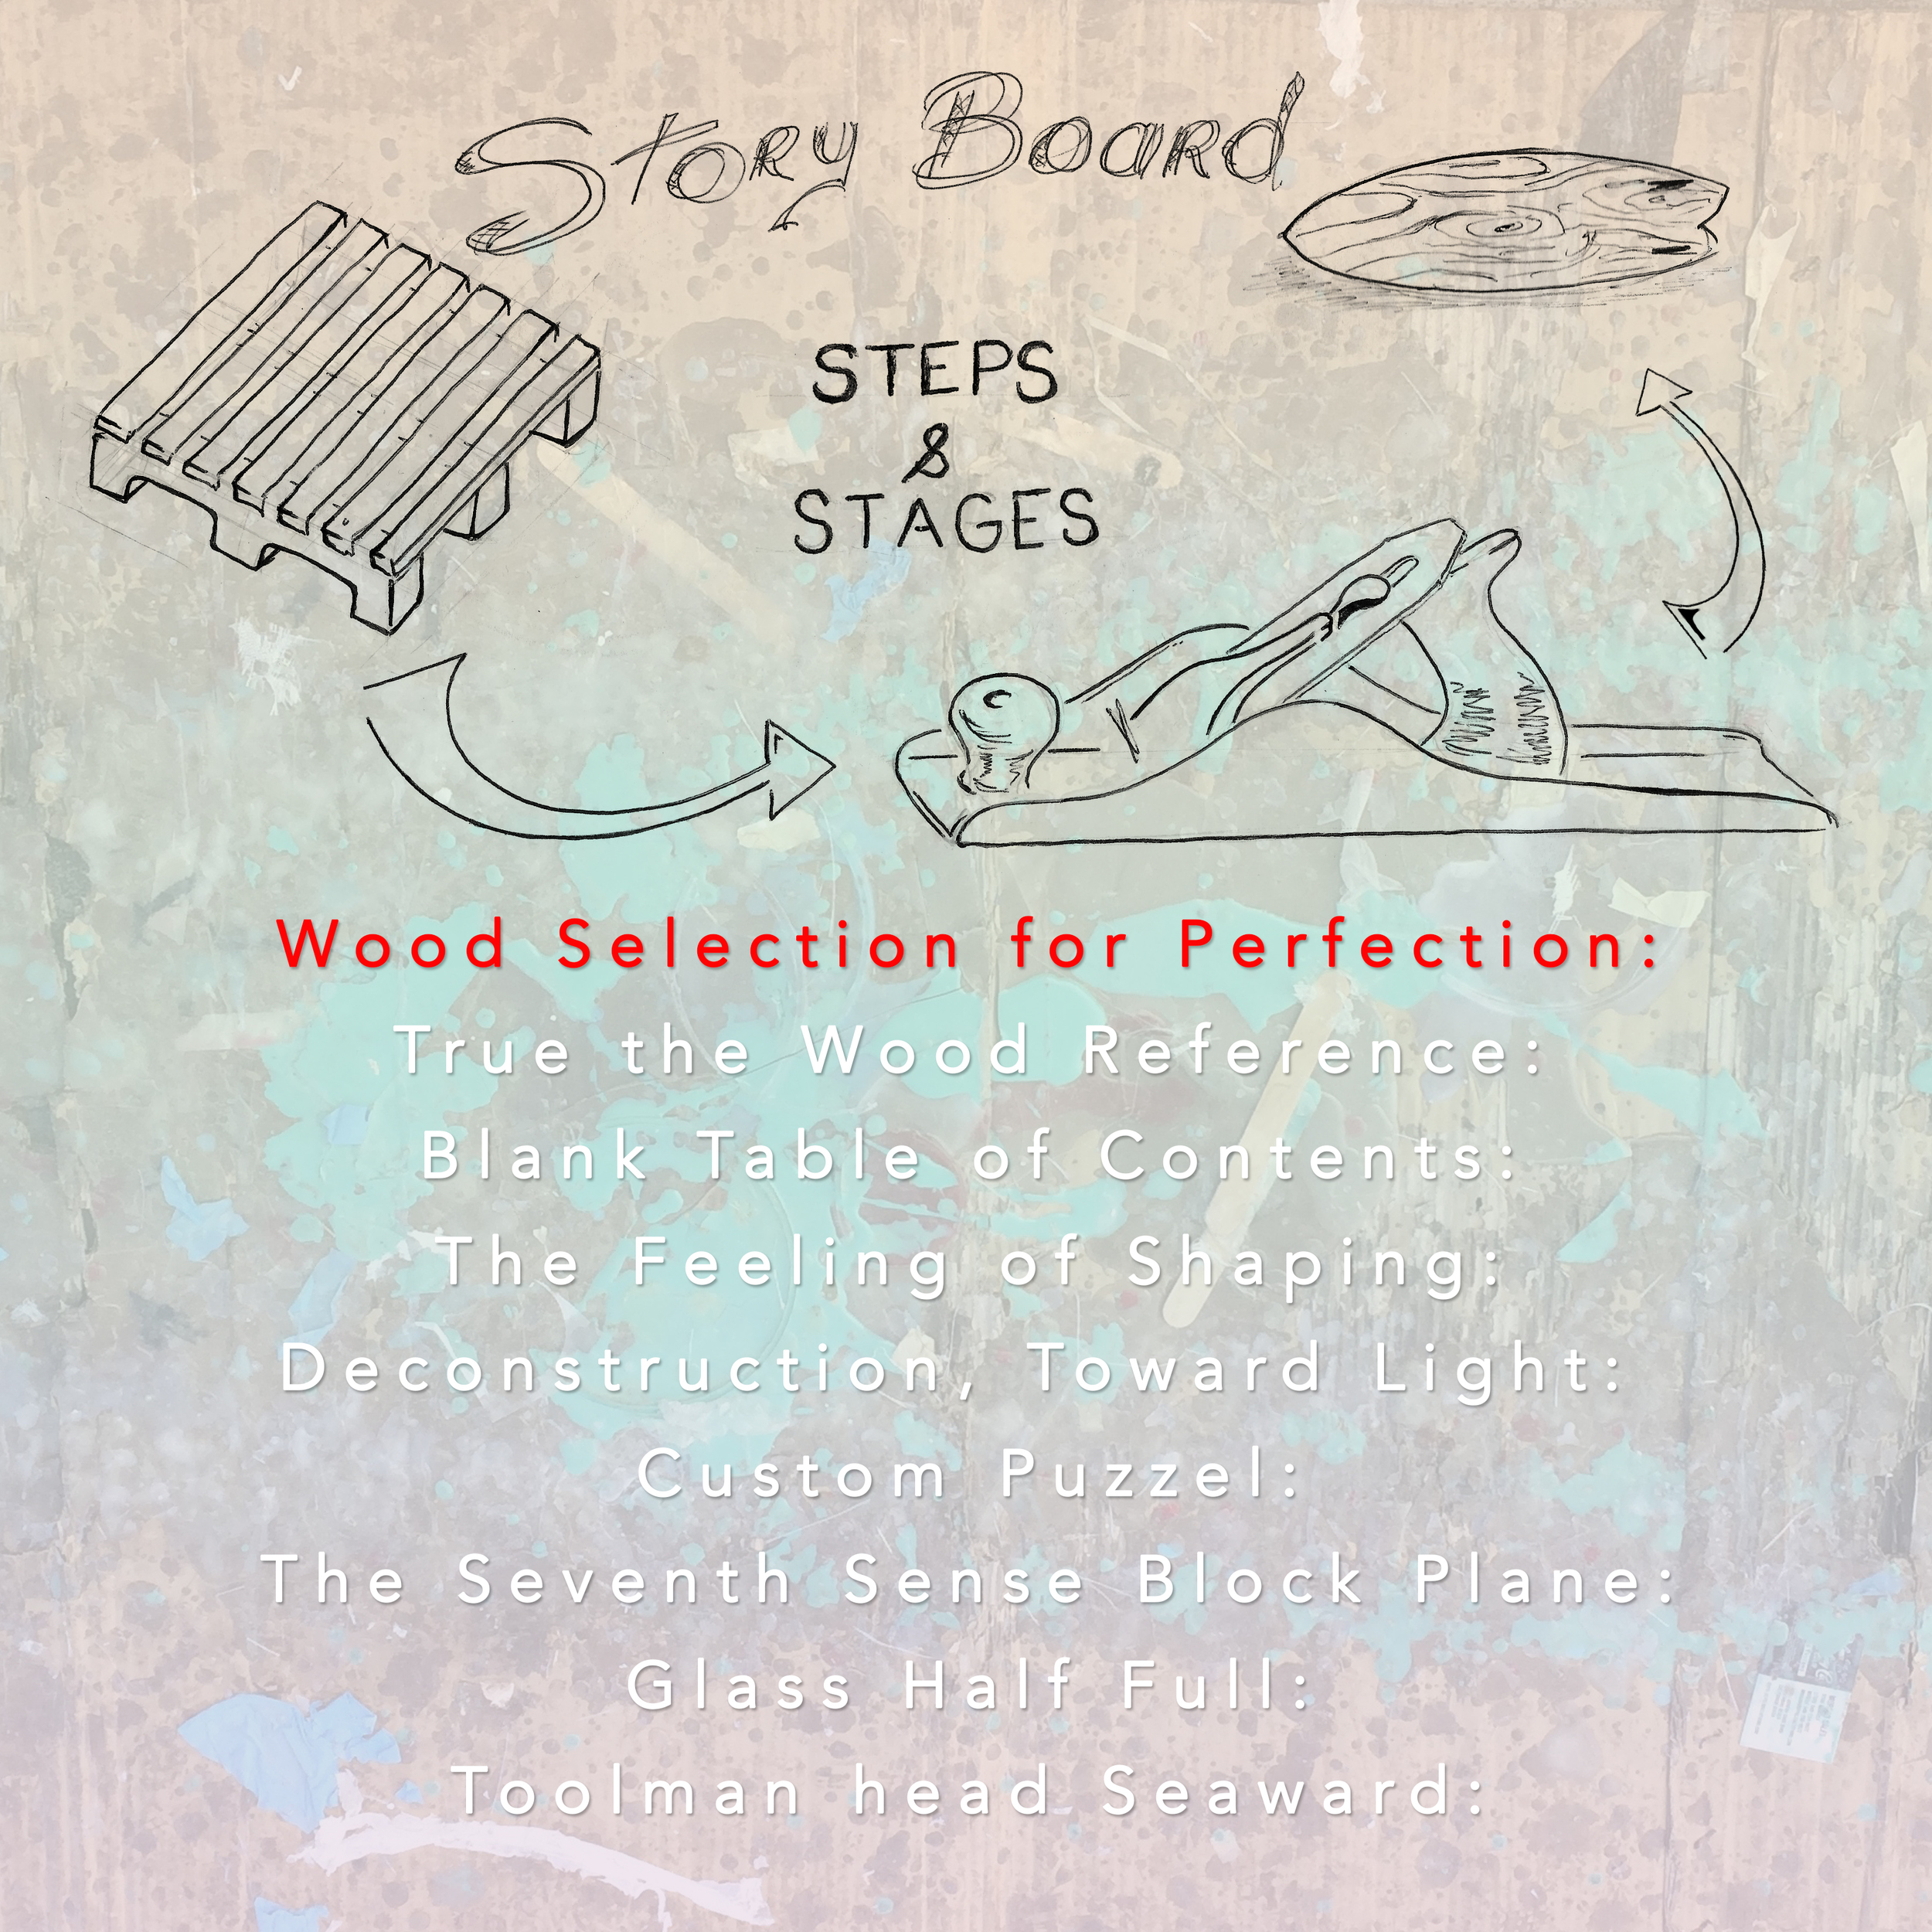 Wood Selection for Perfection